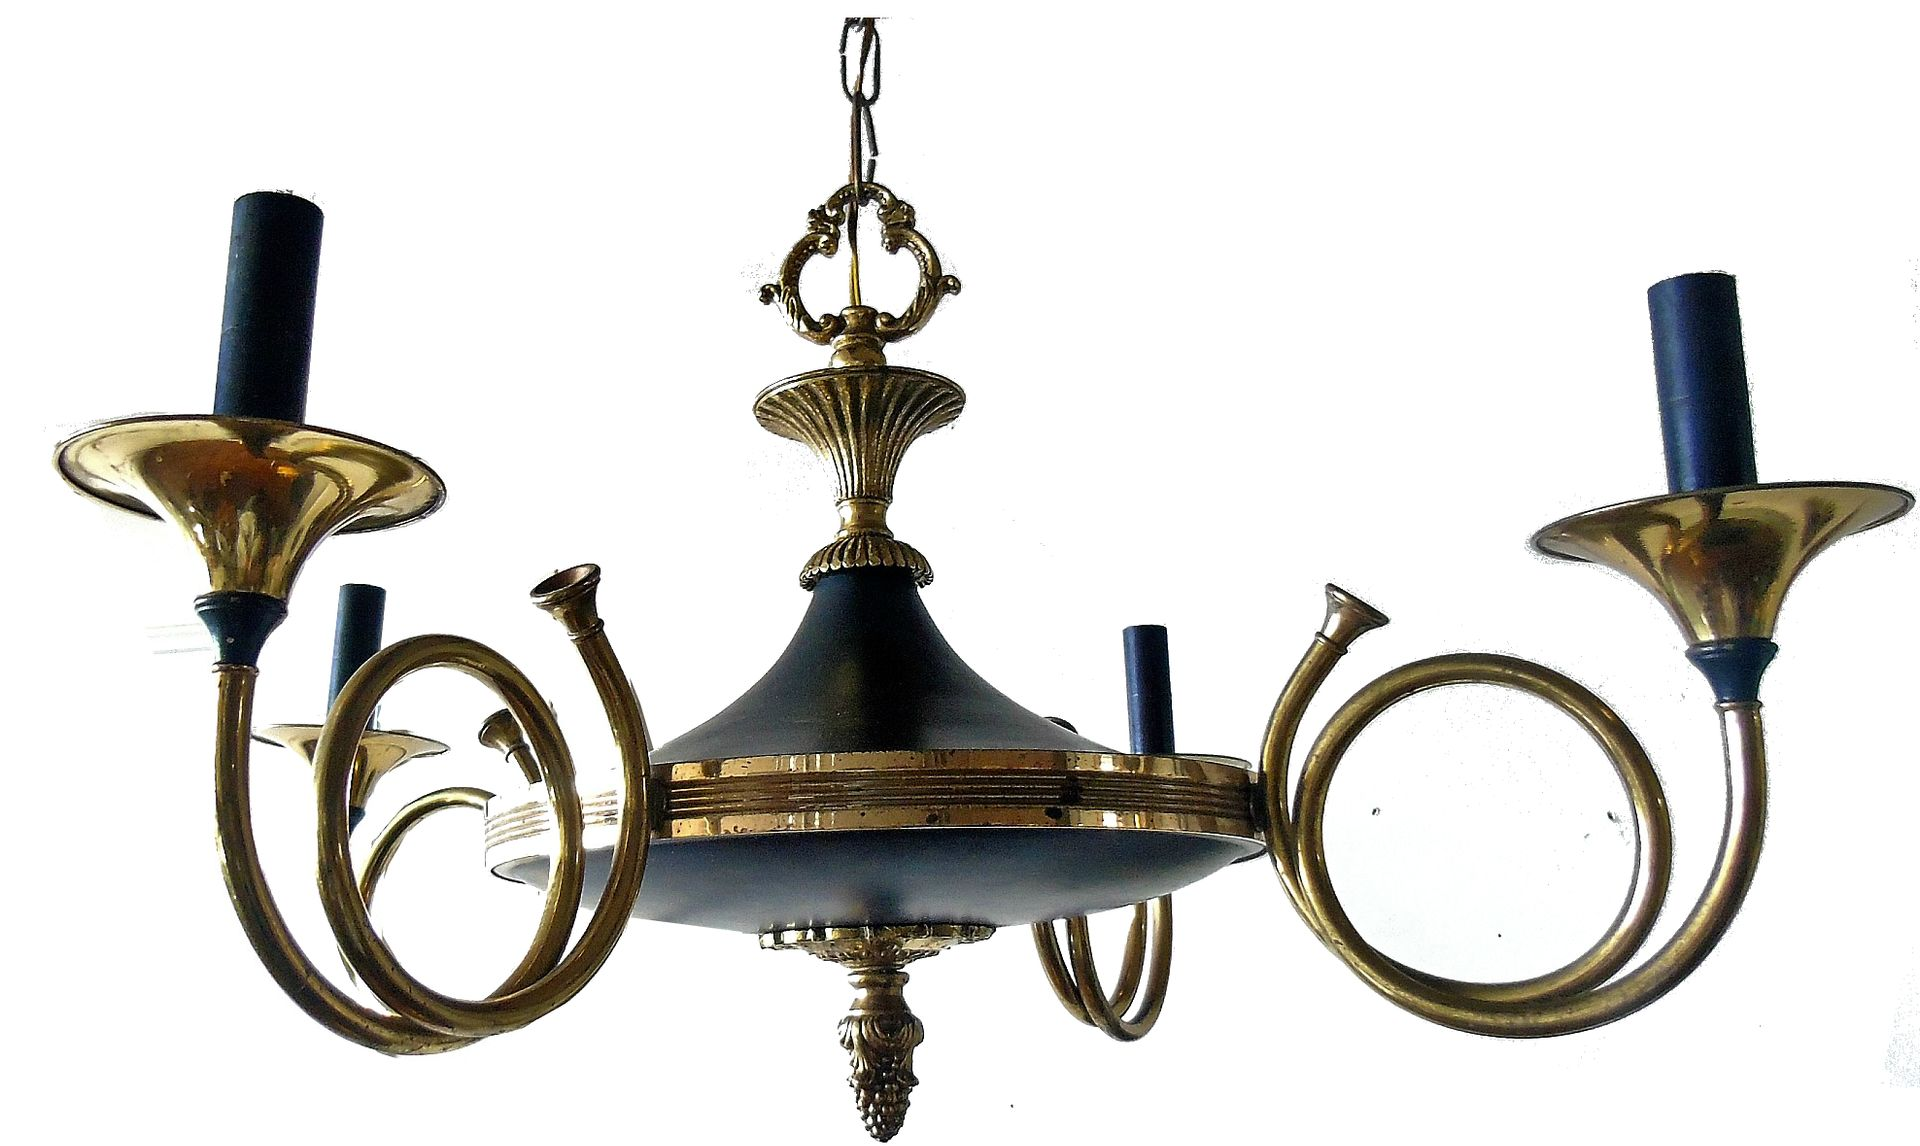 Brass hunting horn chandelier from maison bagues 1940s for sale at brass hunting horn chandelier from maison bagues 1940s aloadofball Images